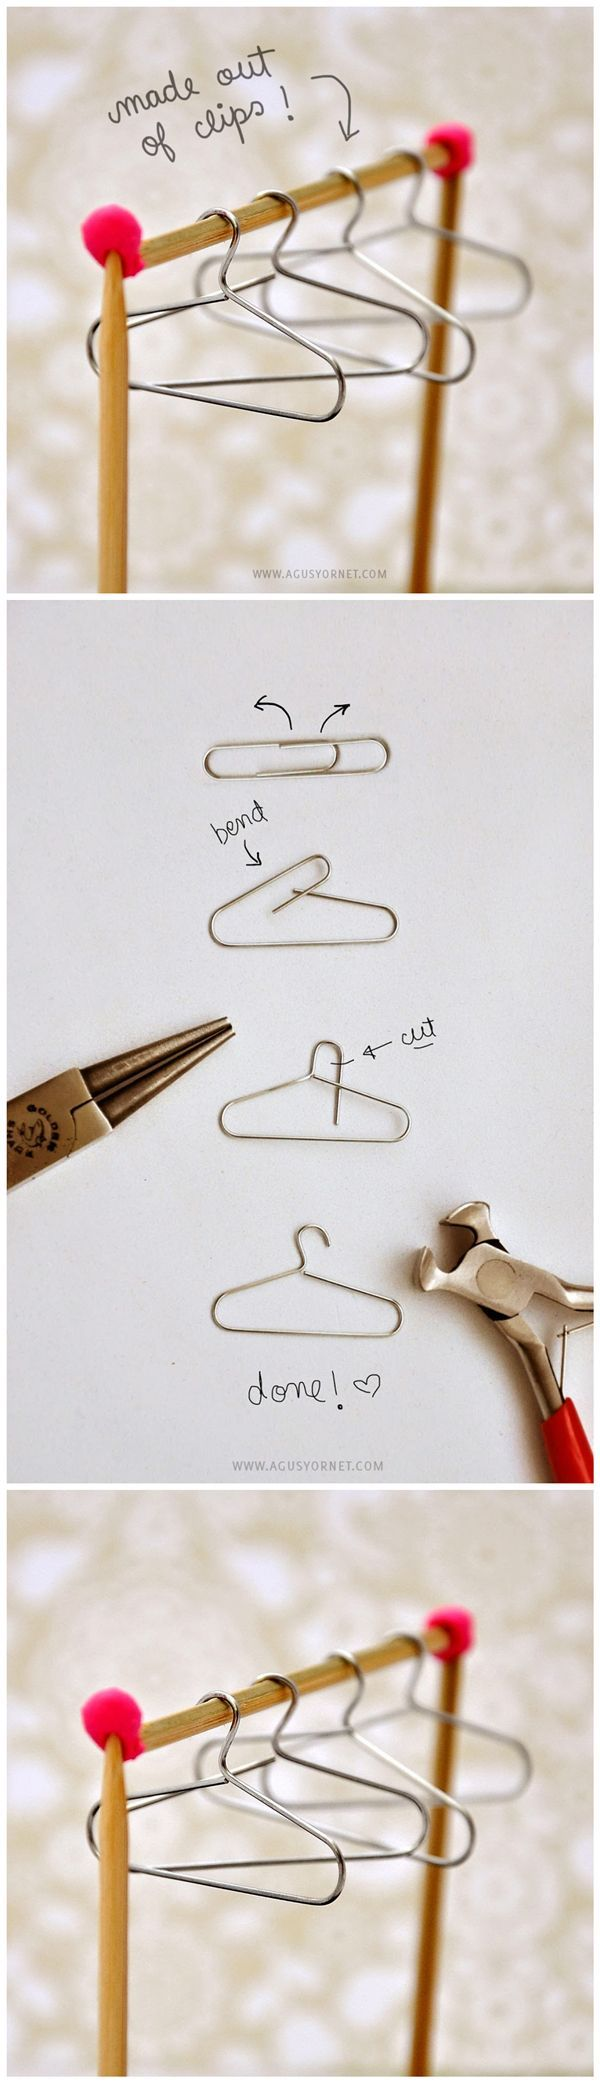 How To #Diy From Paper Clips To #Mini #Hangers